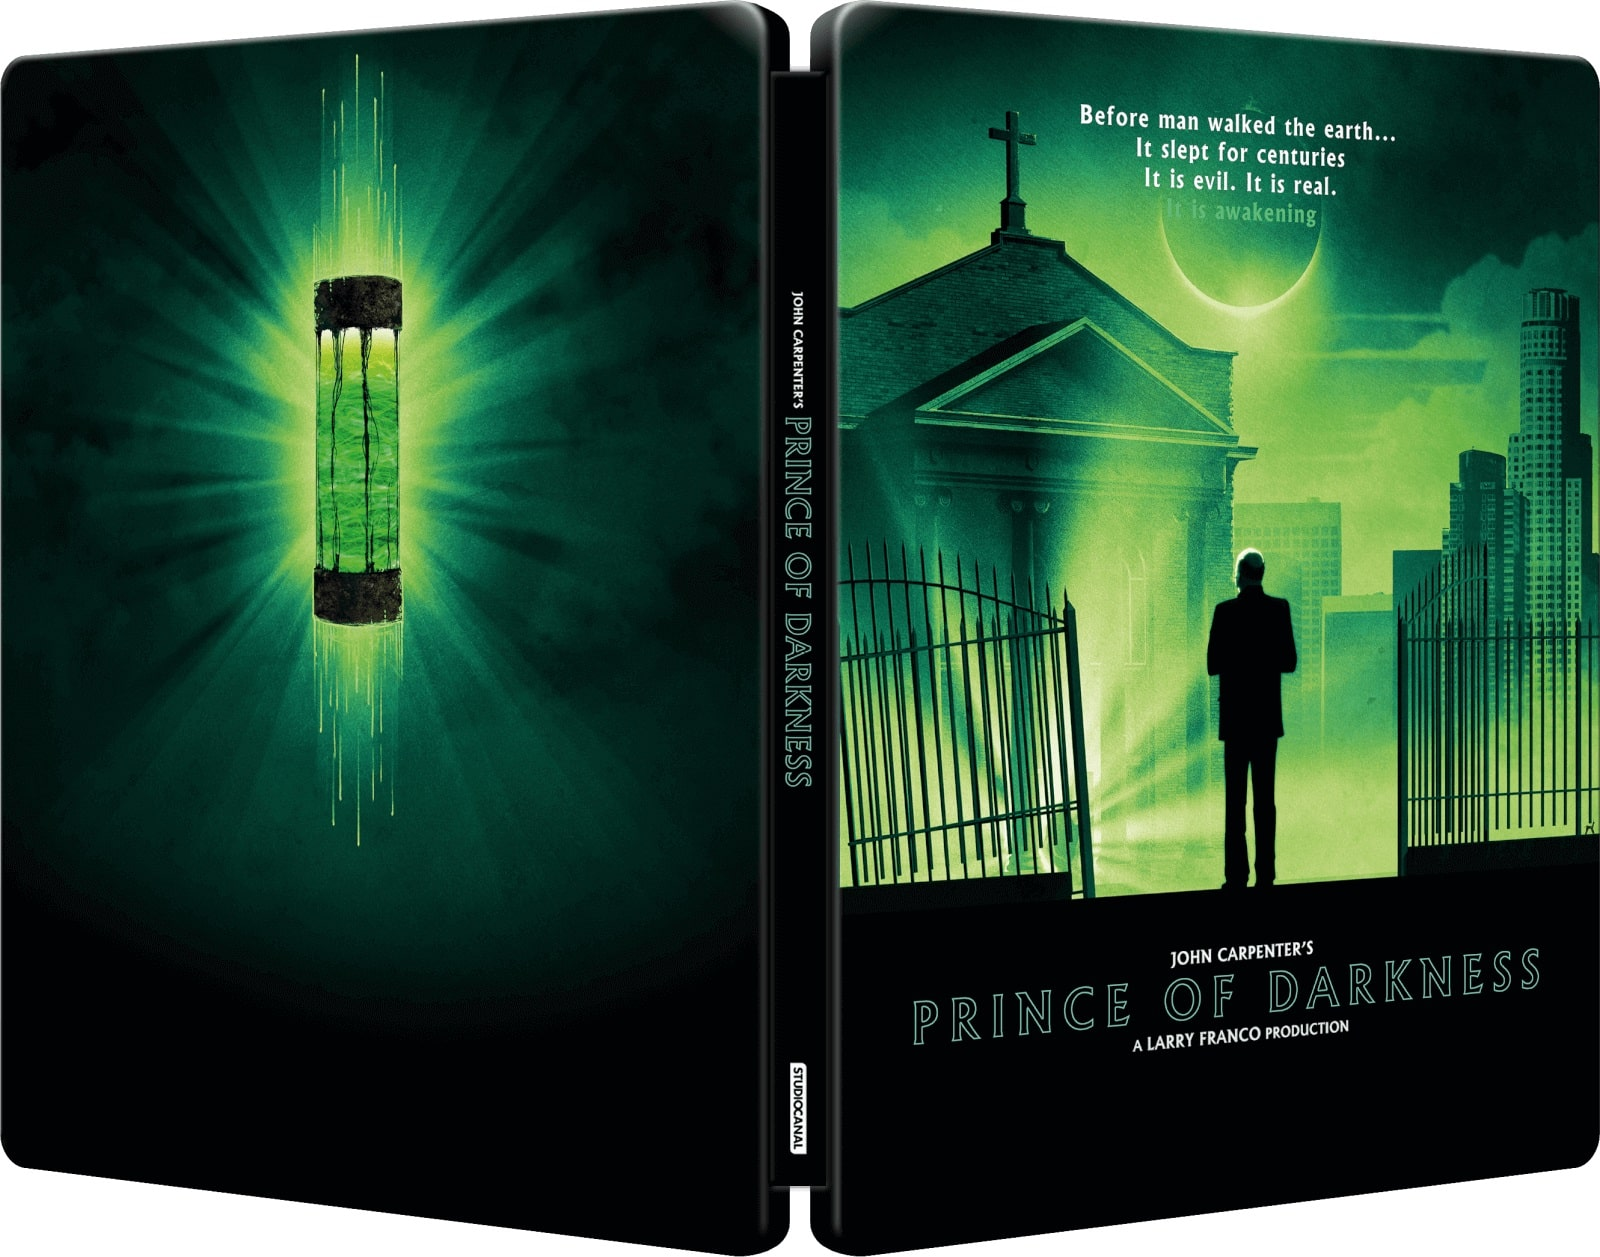 Prince Of Darkness UK Steelbook Blu-Ray